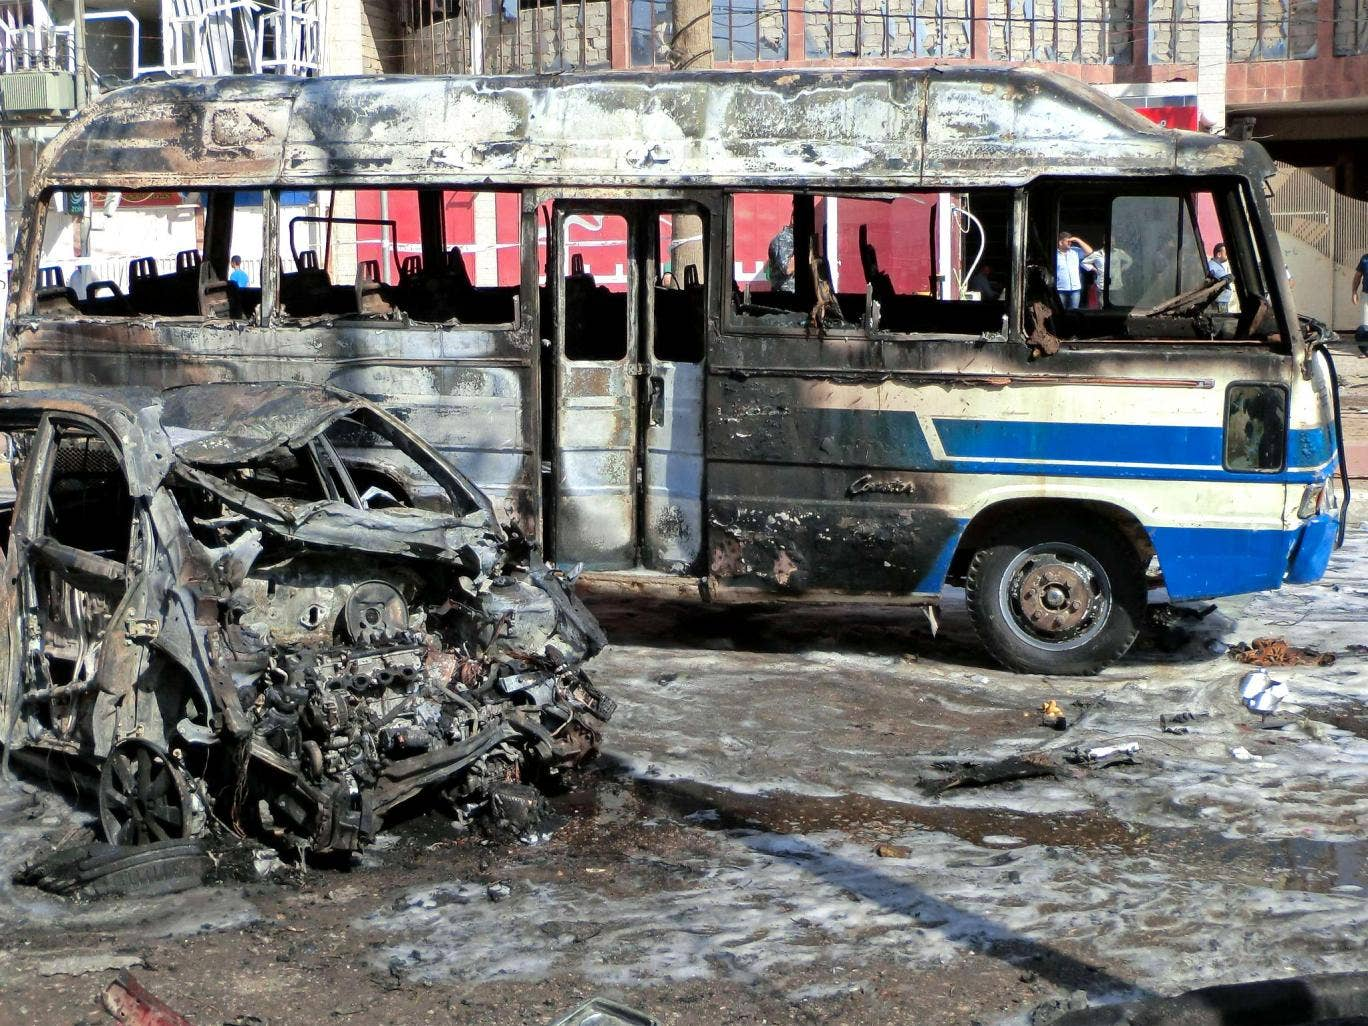 Aftermath of a car bombing in Kirkuk, northern Iraq, on Wednesday